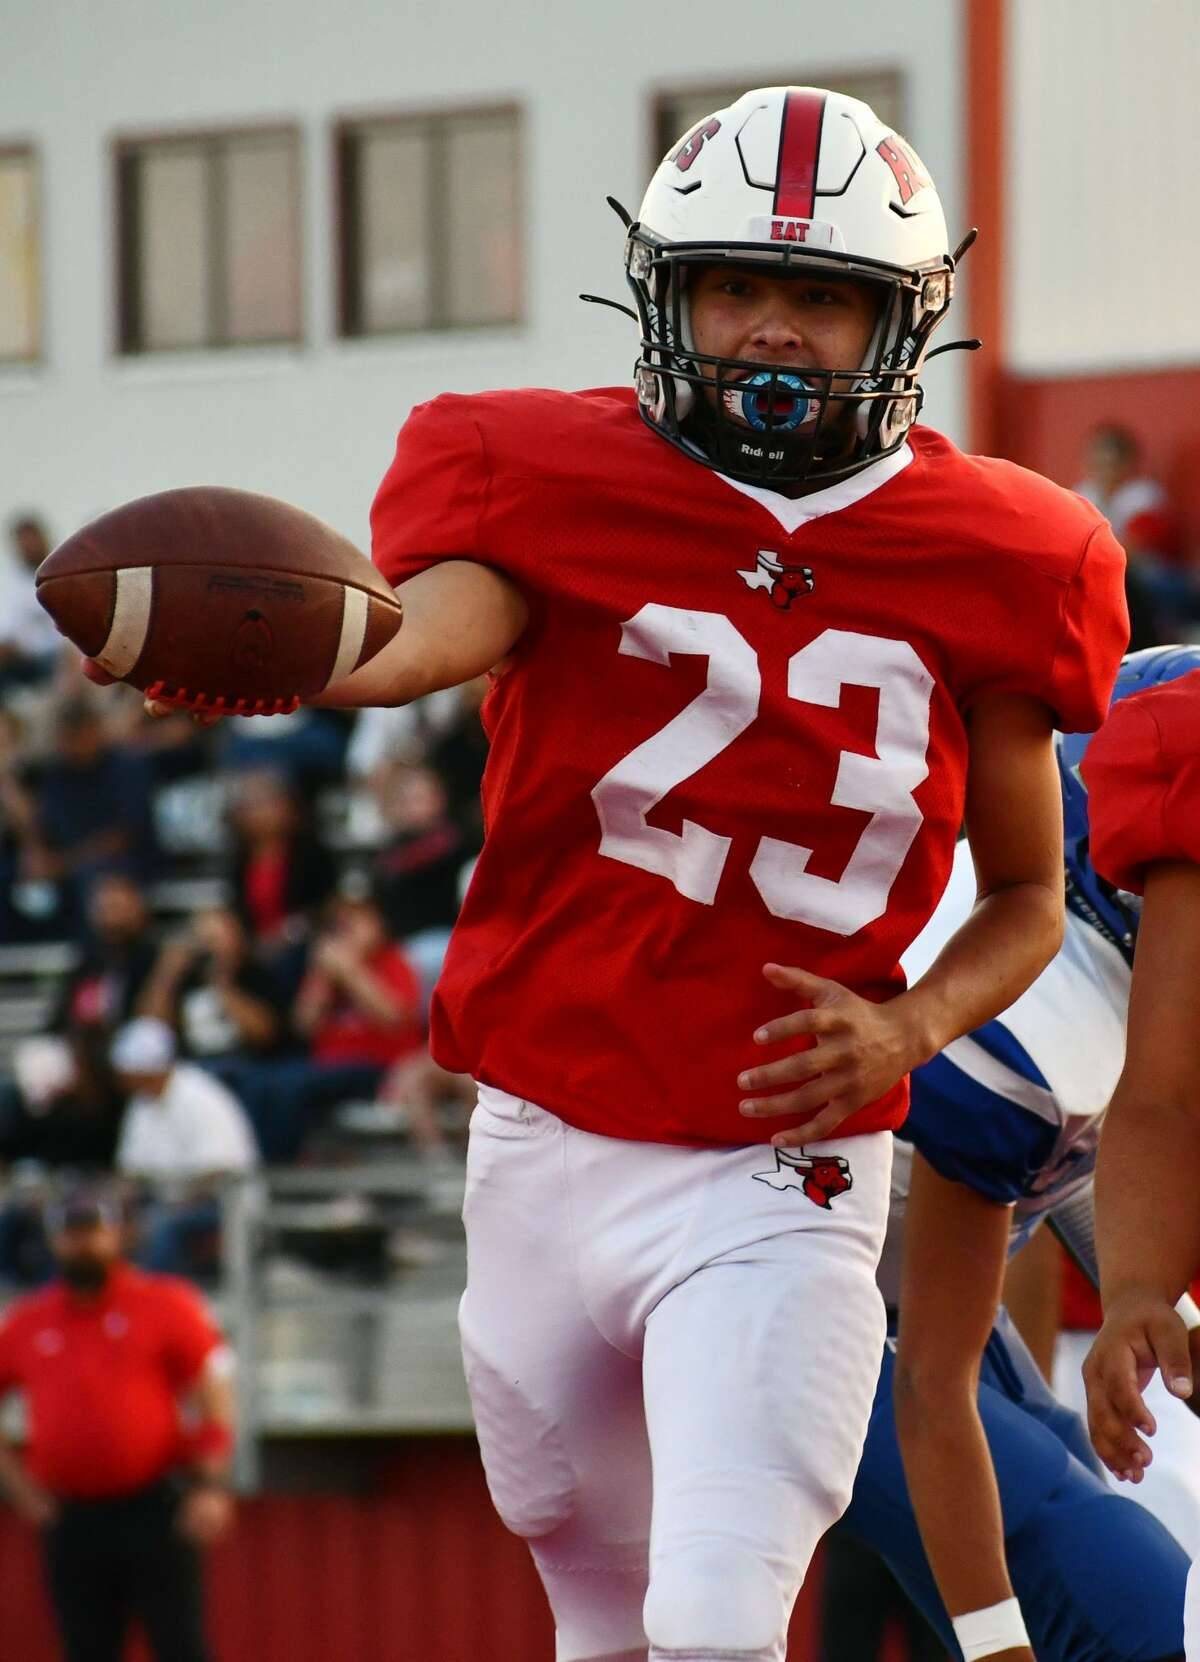 Lockney's Anson Rendon was named a second team All-State running back in Class 2A by the Texas Sports Writers Association.